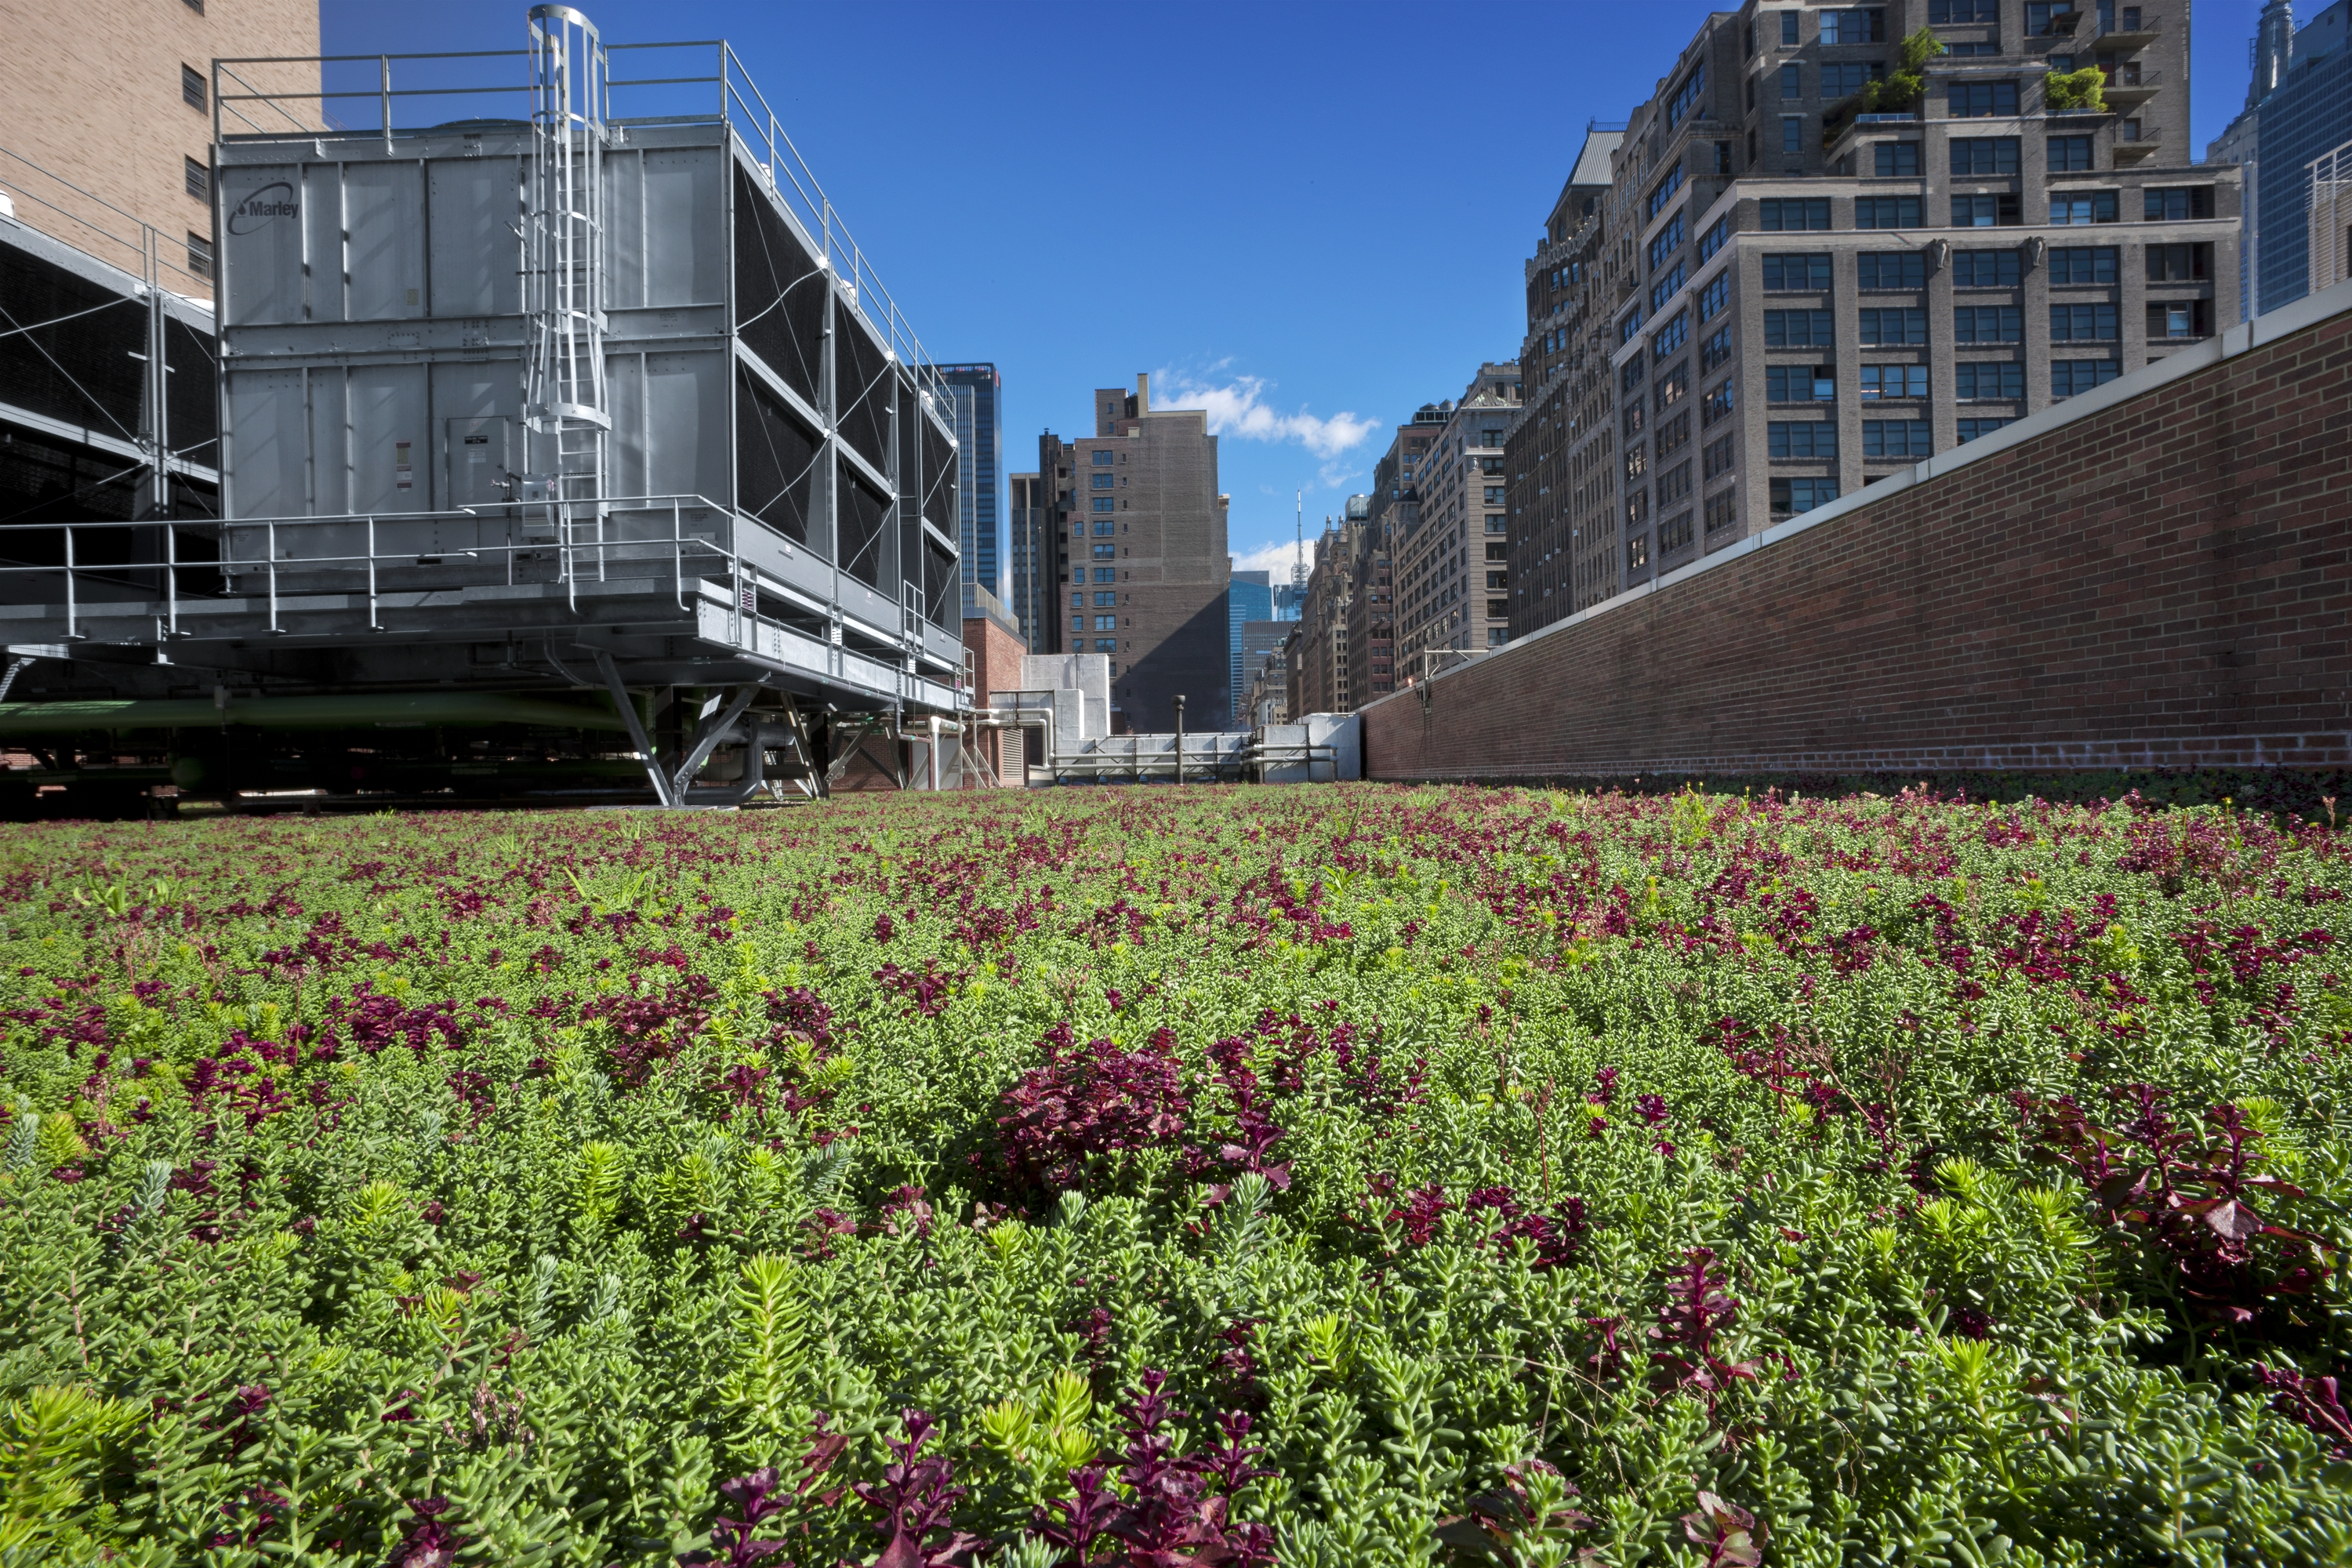 Awesome The New York State Tax Credit For Green Roofs Has Increased By More Than 16%